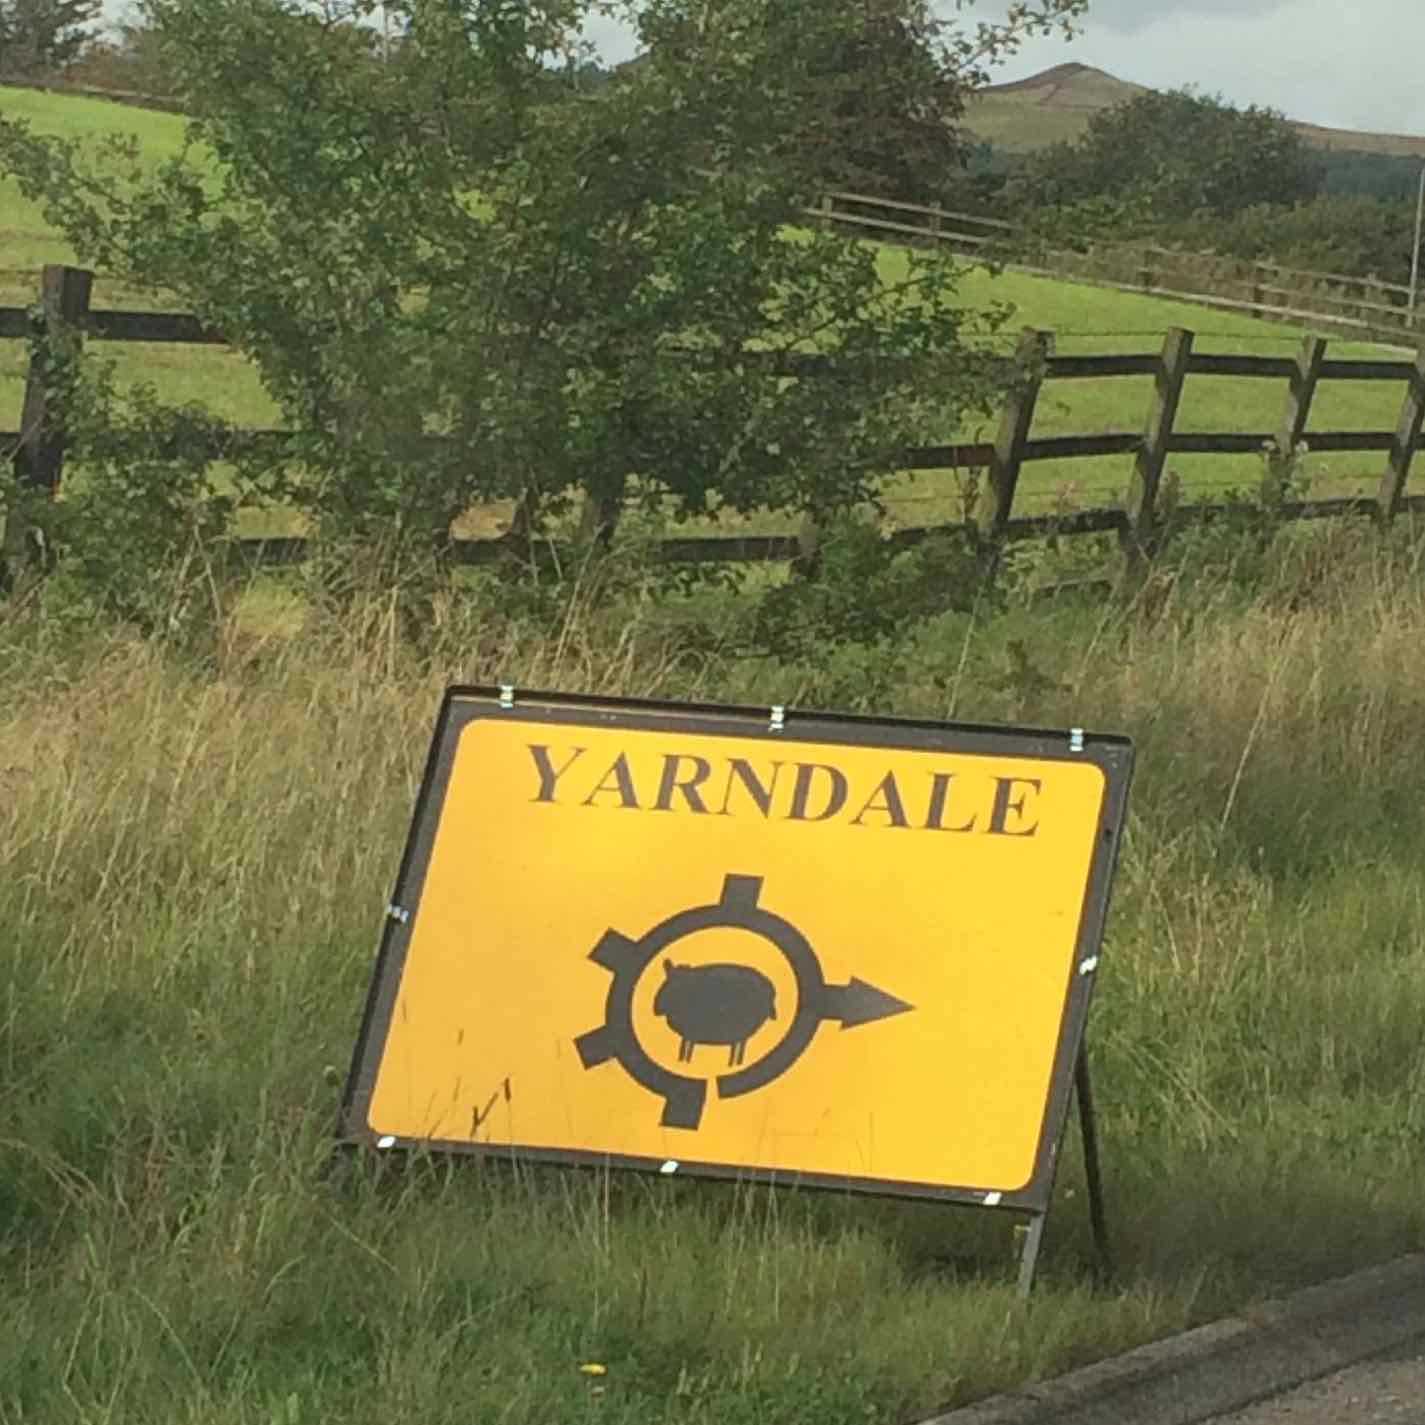 The Yarndale sheep sign